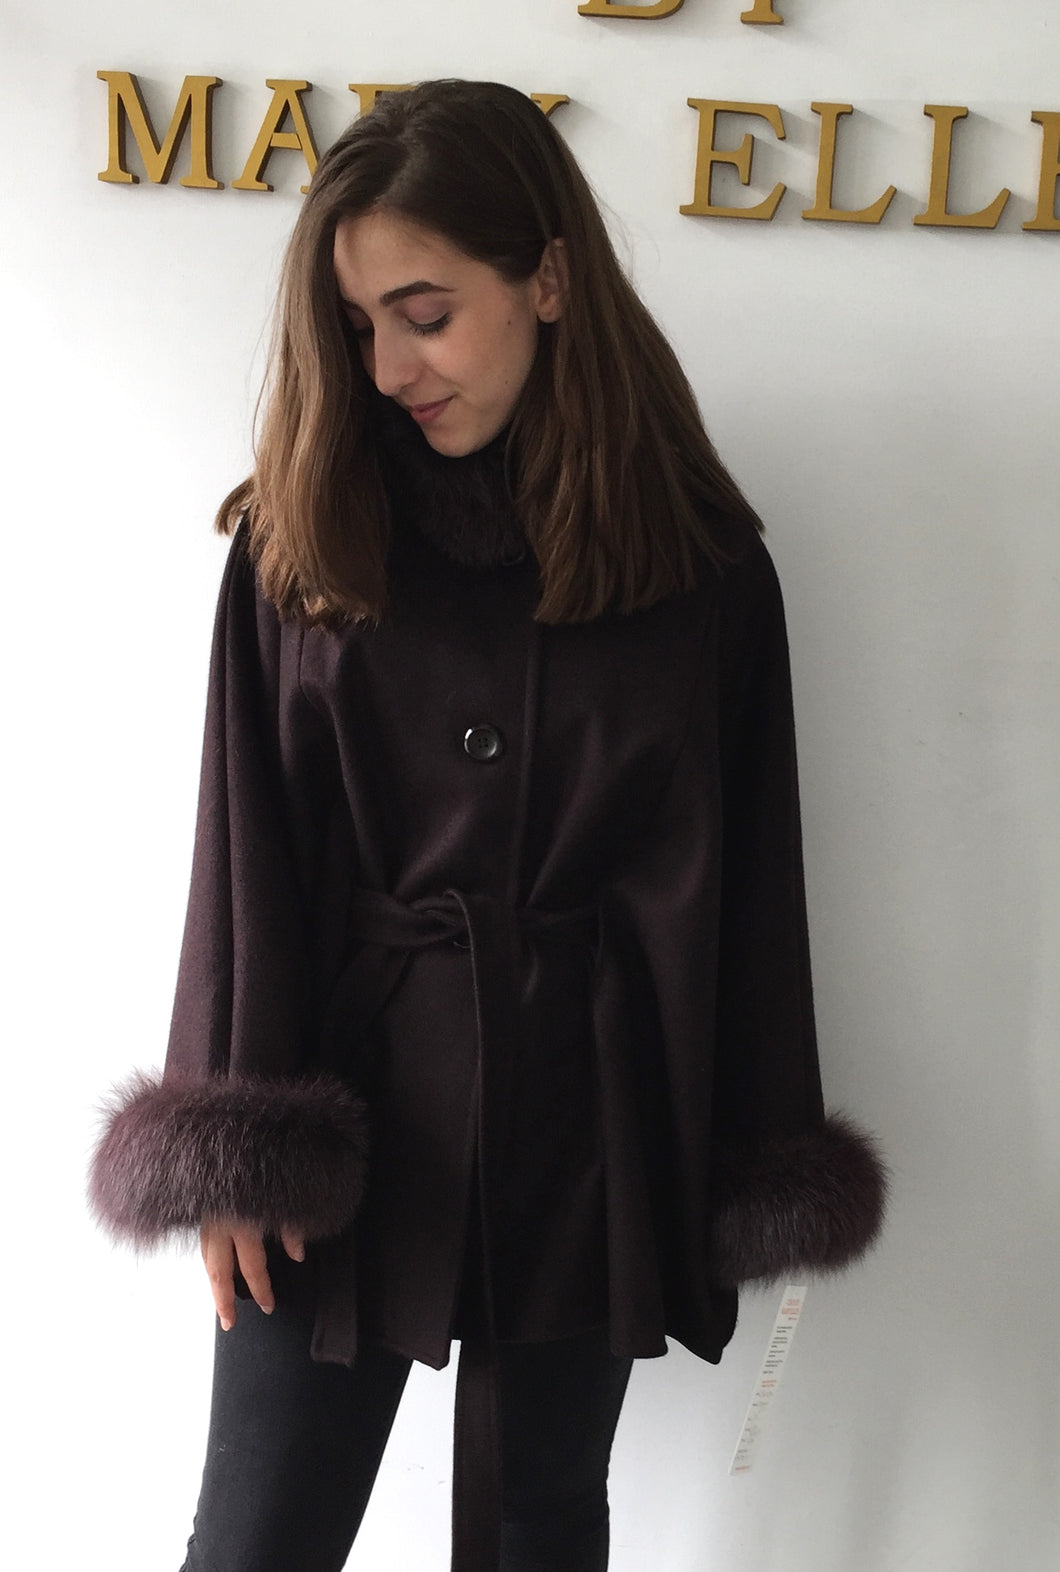 Maria Belted Cape-  Cashmere & Wool Blend -Fox Trim